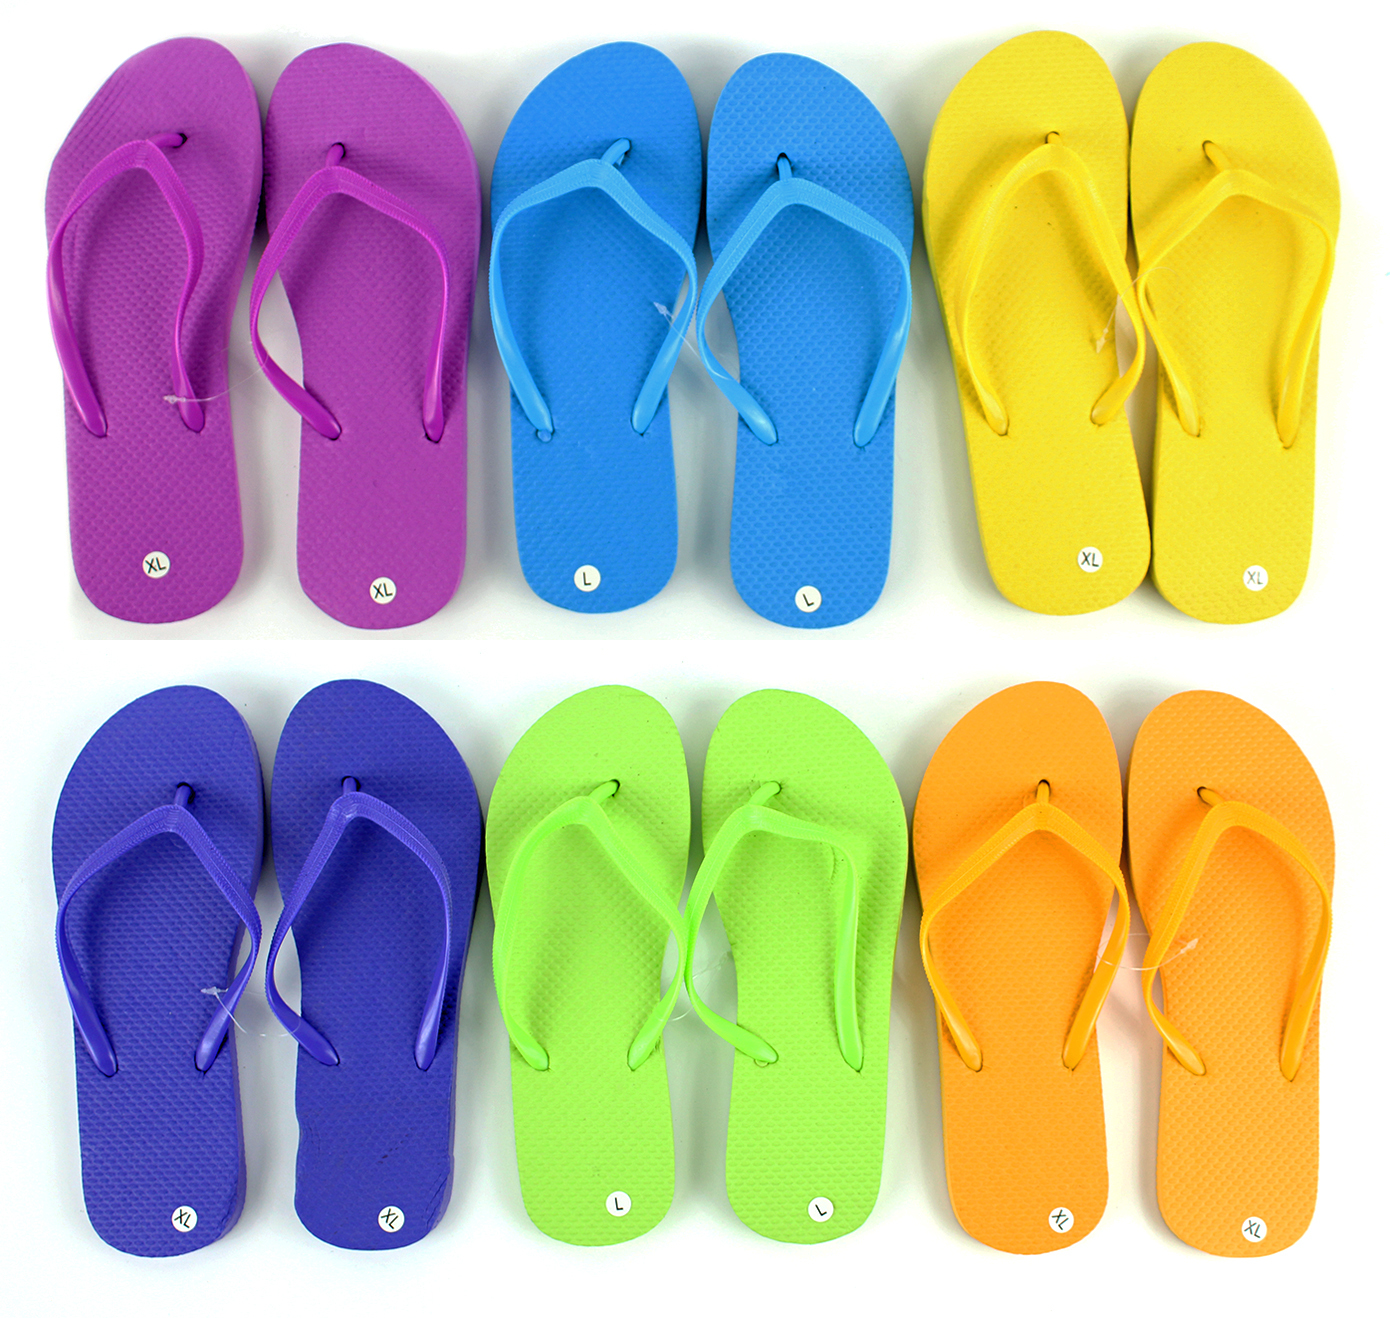 Women's Solid Colored Flip Flops SHOES [729286]